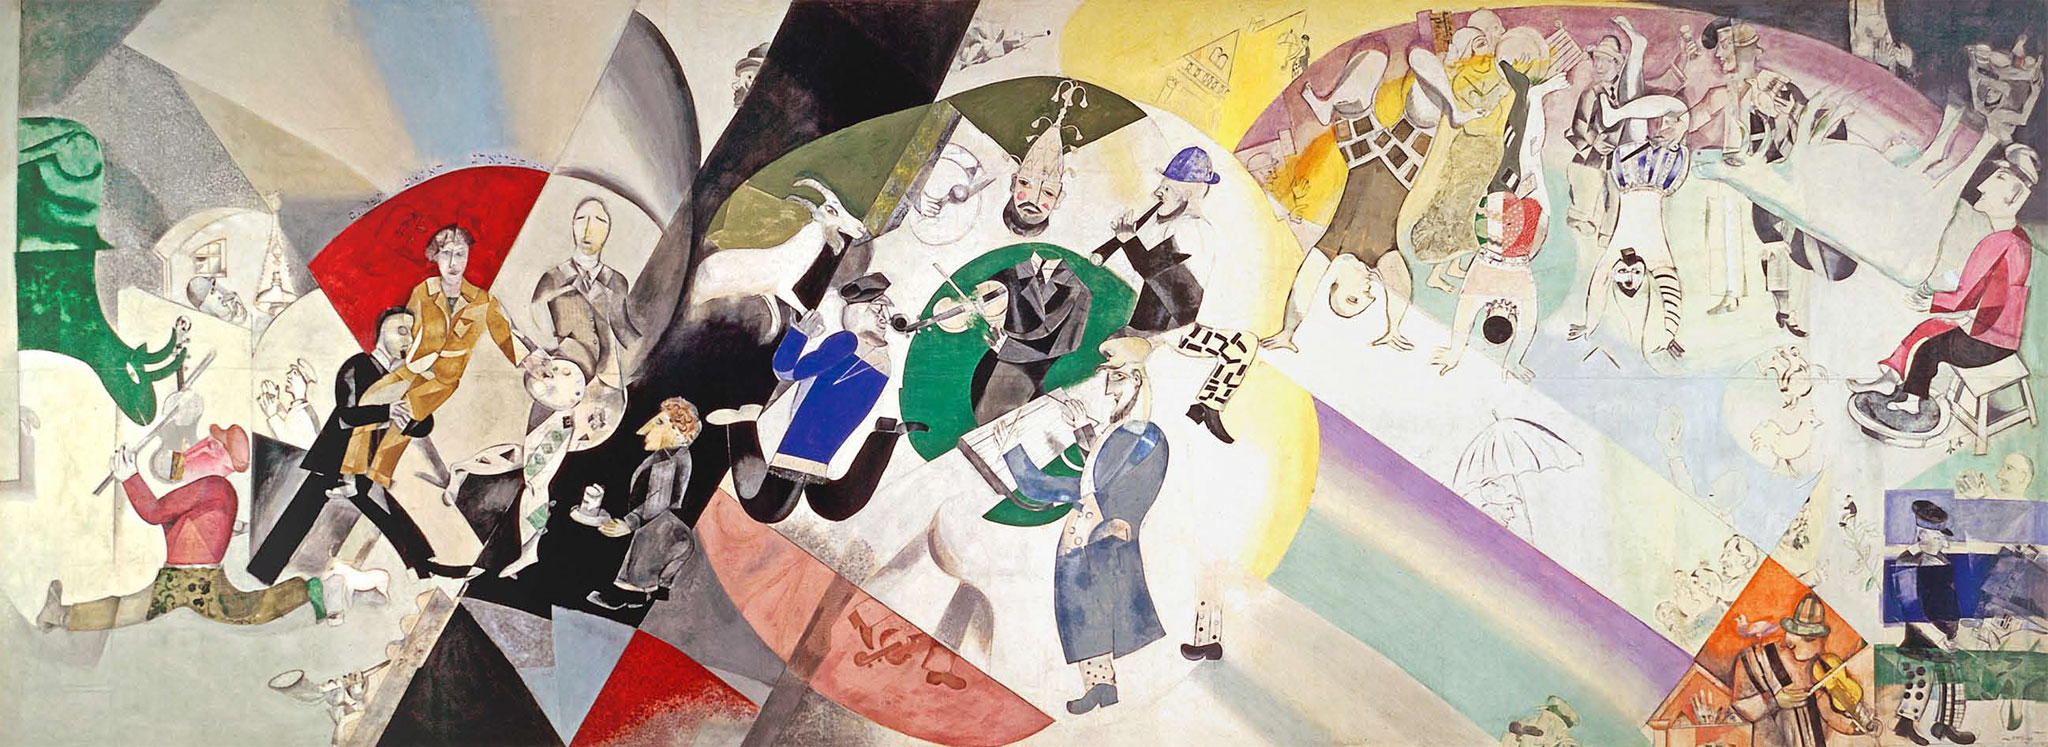 Introduction to the Jewish Theatre - Chagall's Box